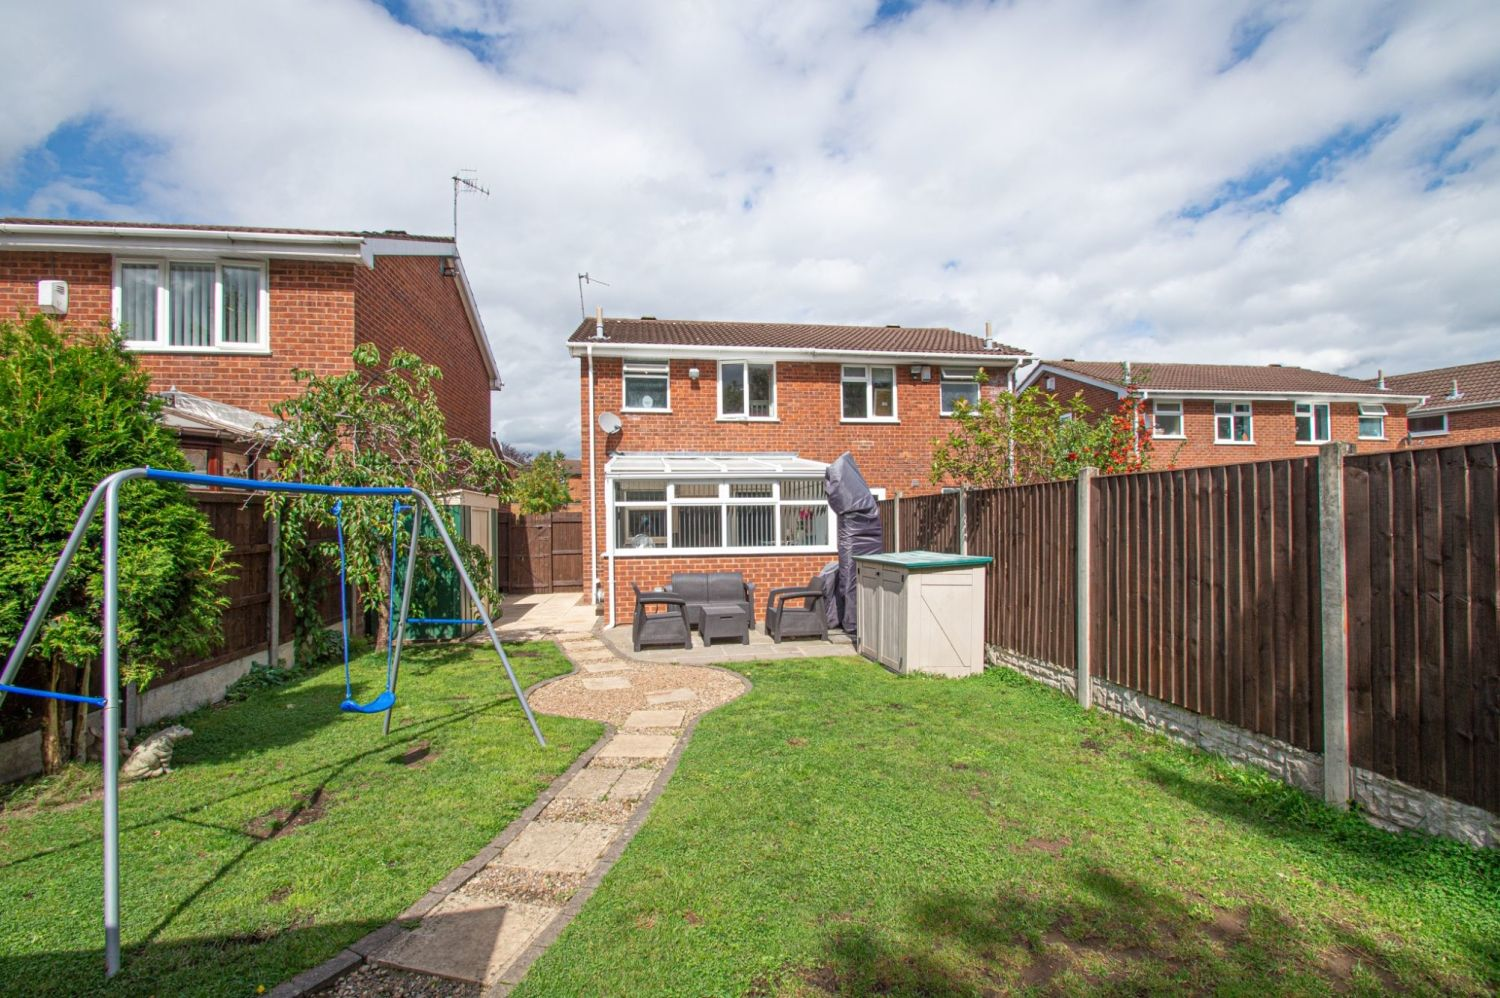 2 bed semi-detached for sale in Brayford Avenue, Brierley Hill  - Property Image 12